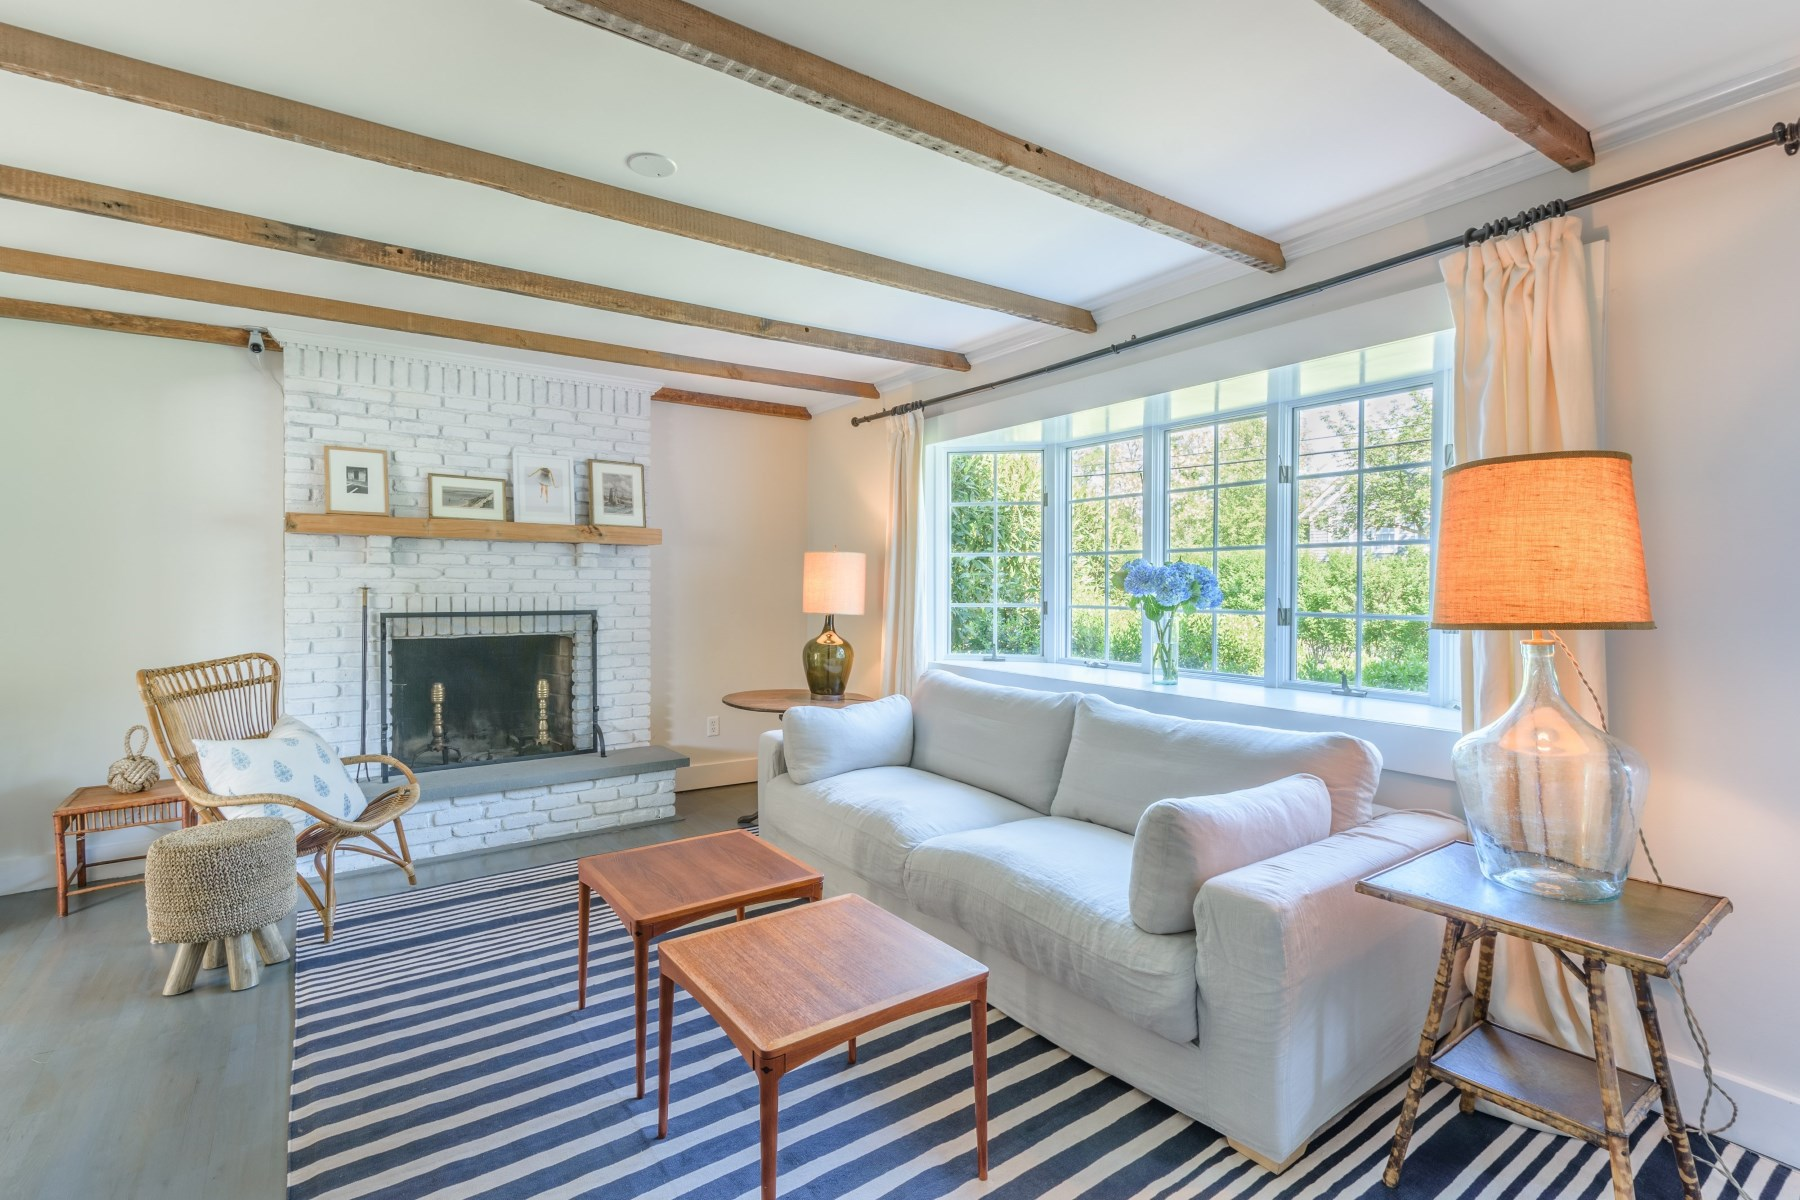 Additional photo for property listing at Sag Harbor Village Townhouse 125 Glover Street Sag Harbor, New York 11963 United States